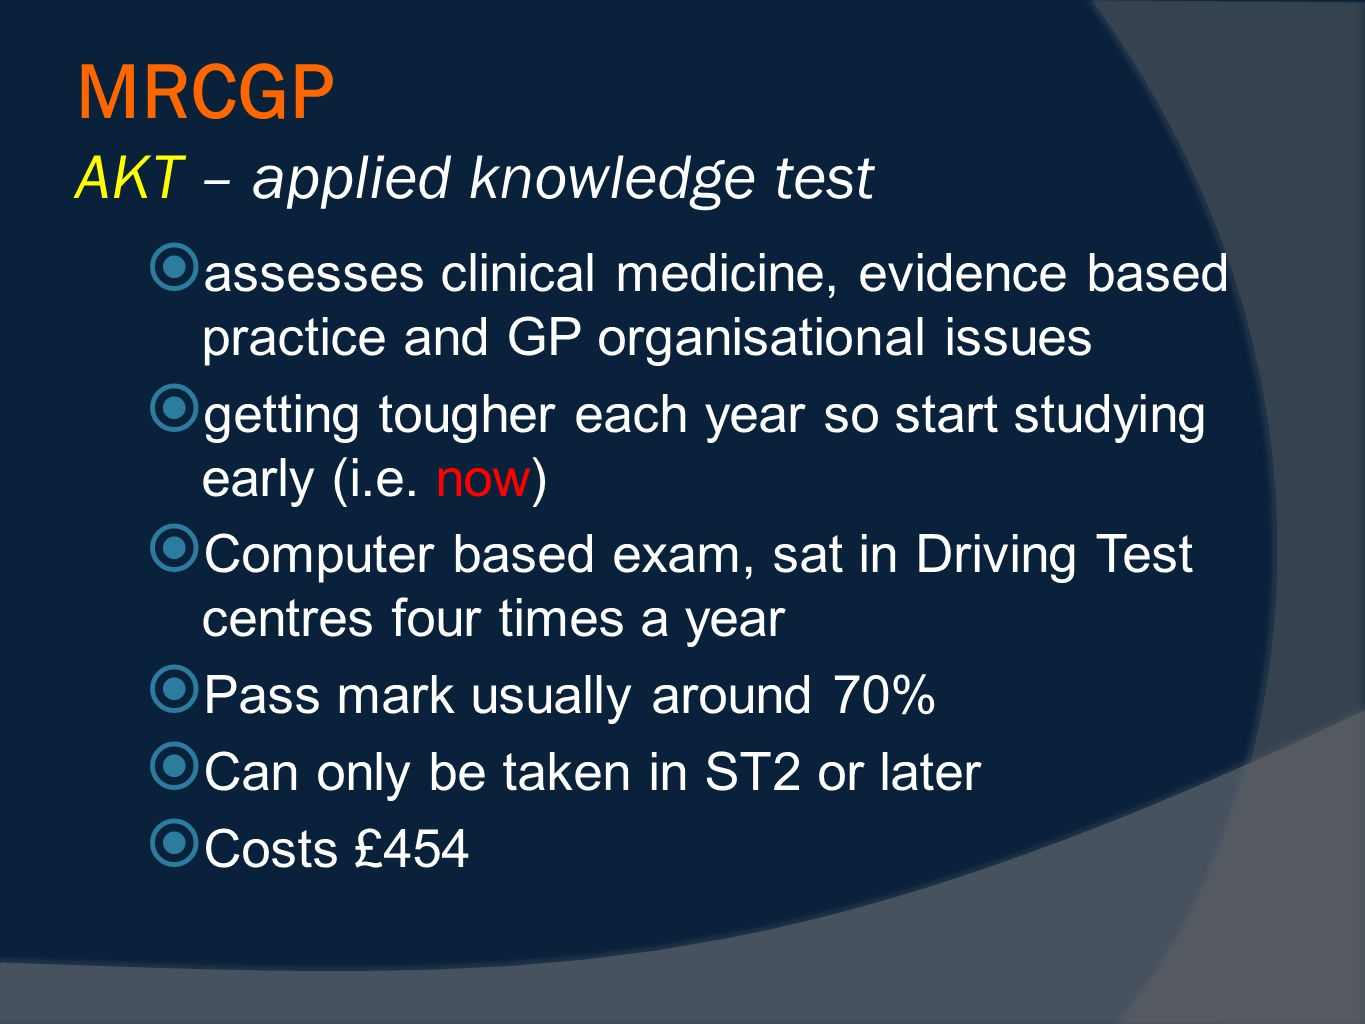 MRCGP AKT – applied knowledge test assesses clinical medicine, evidence based practice and GP organisational issues getting tougher each year so start